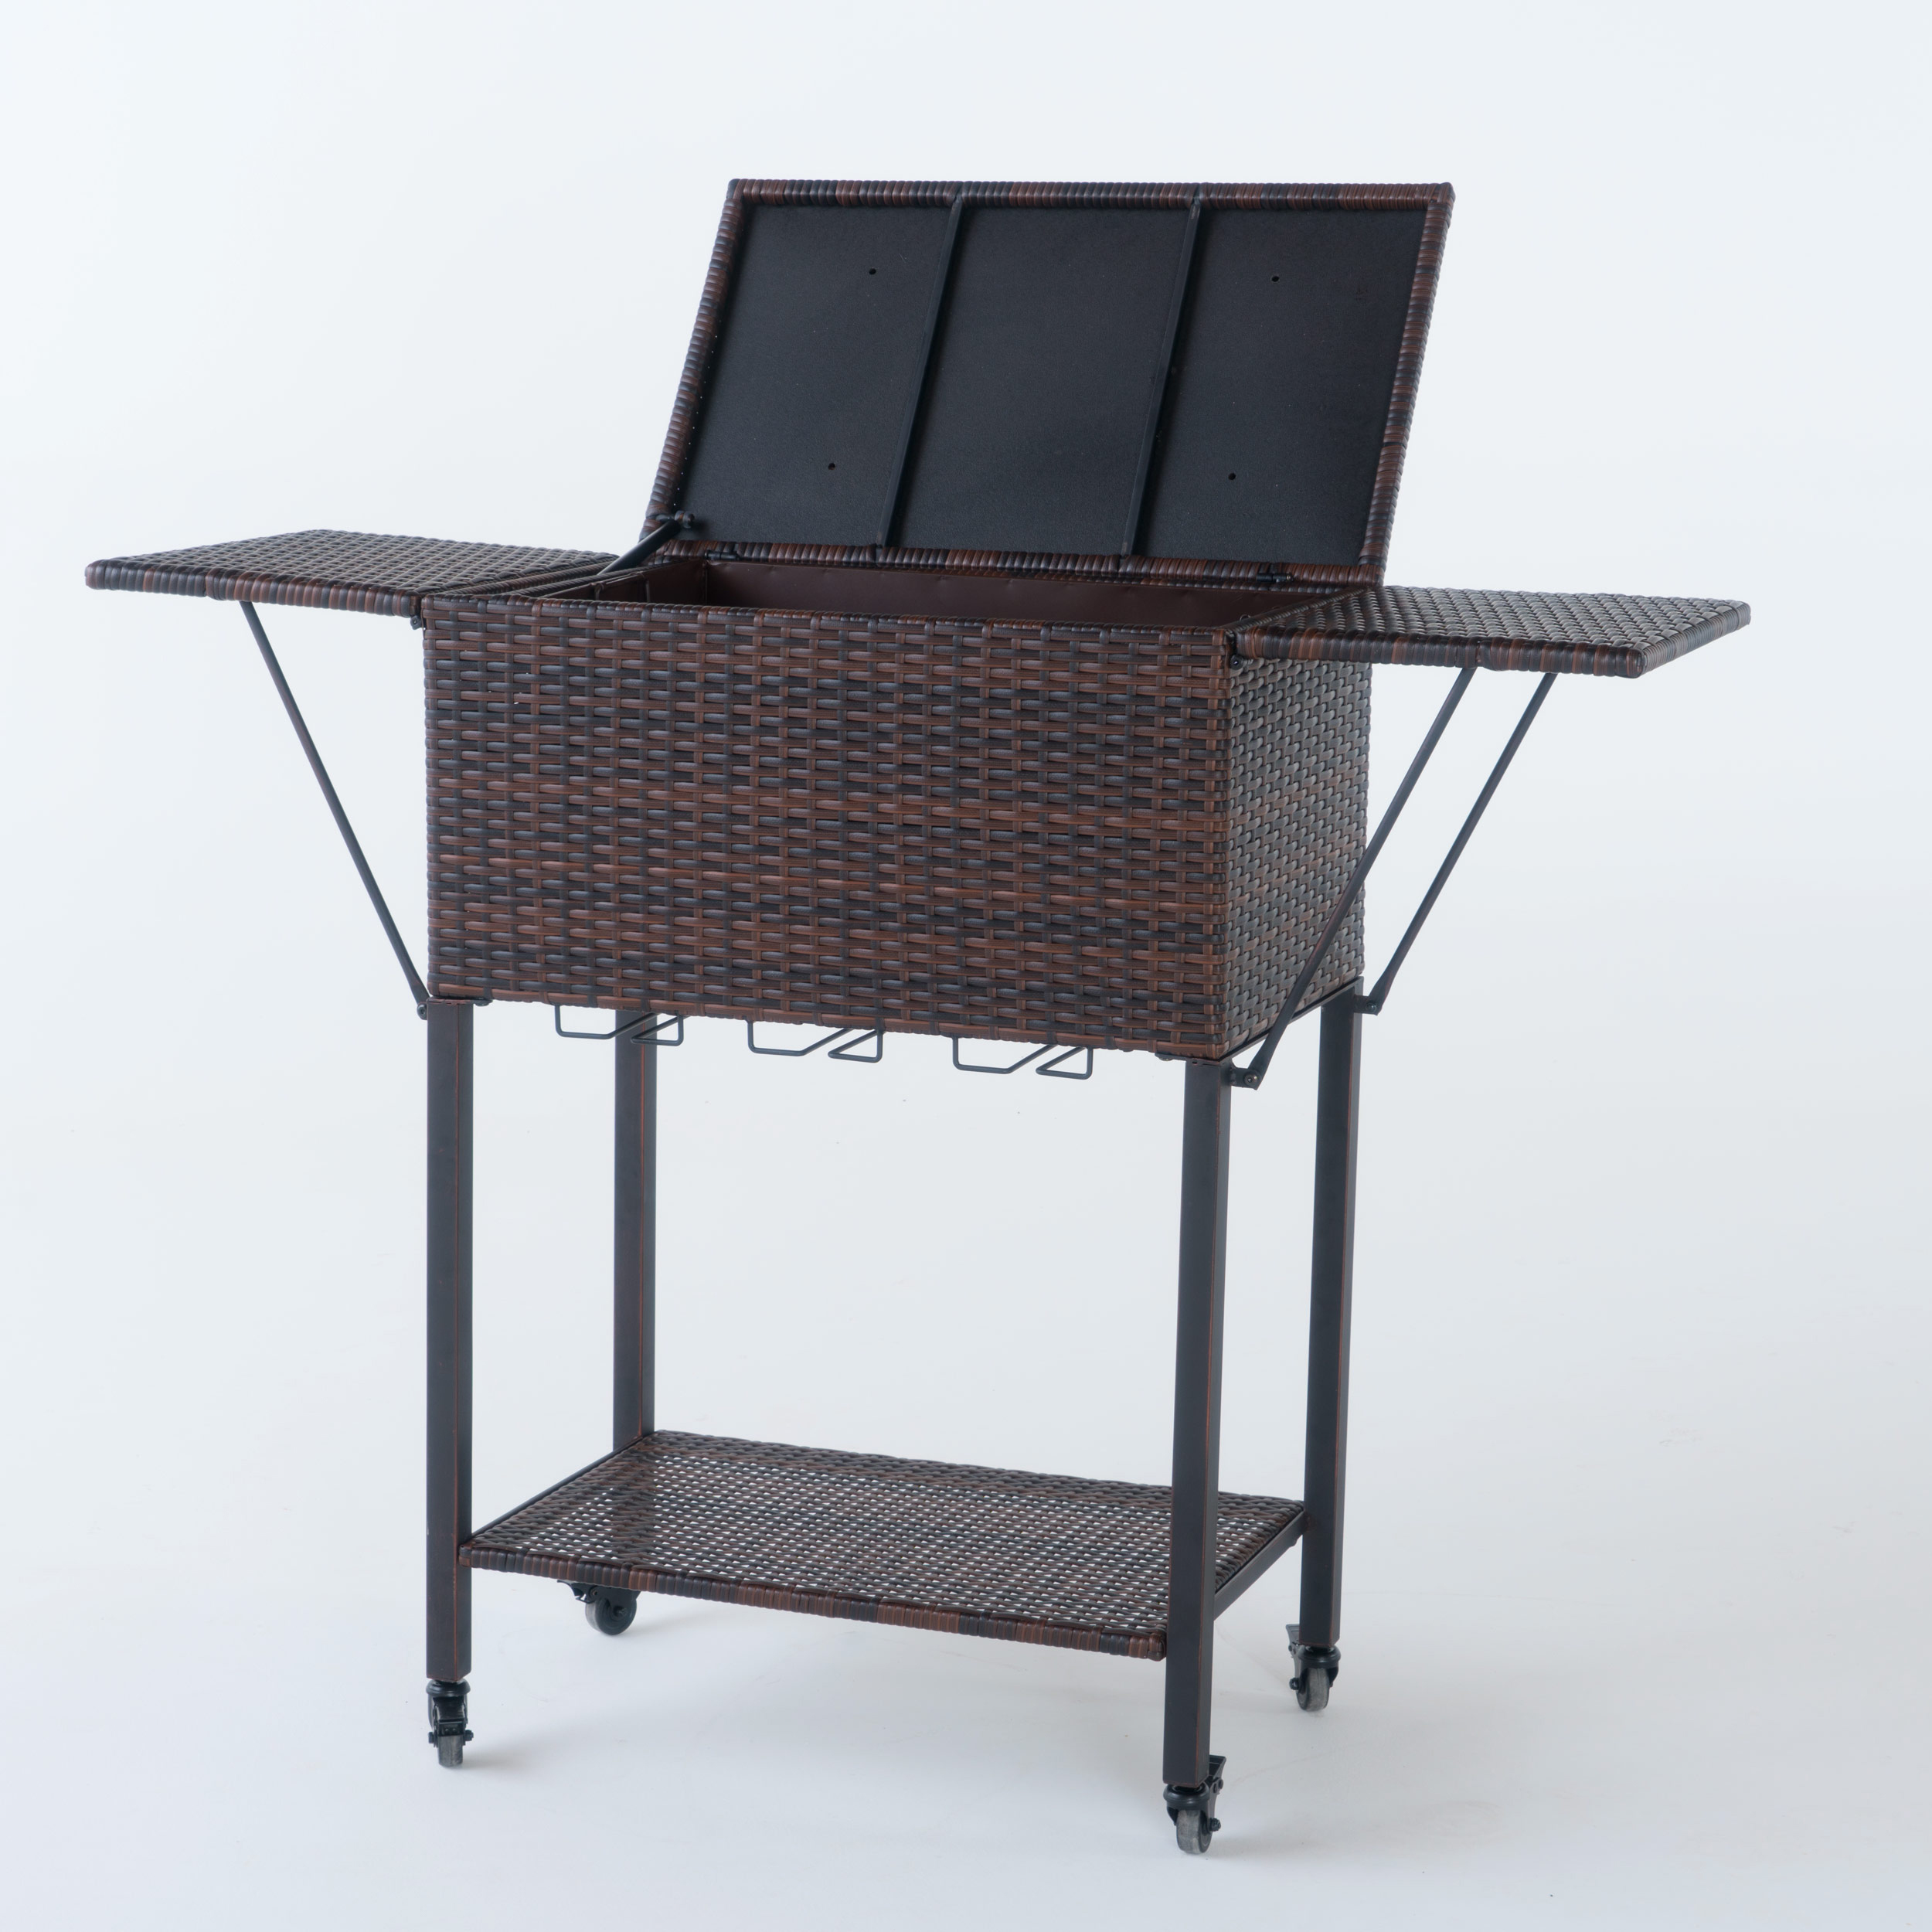 Parma Outdoor Portable Multibrown Wicker Bar Serving Cart with Wine Glass Rack